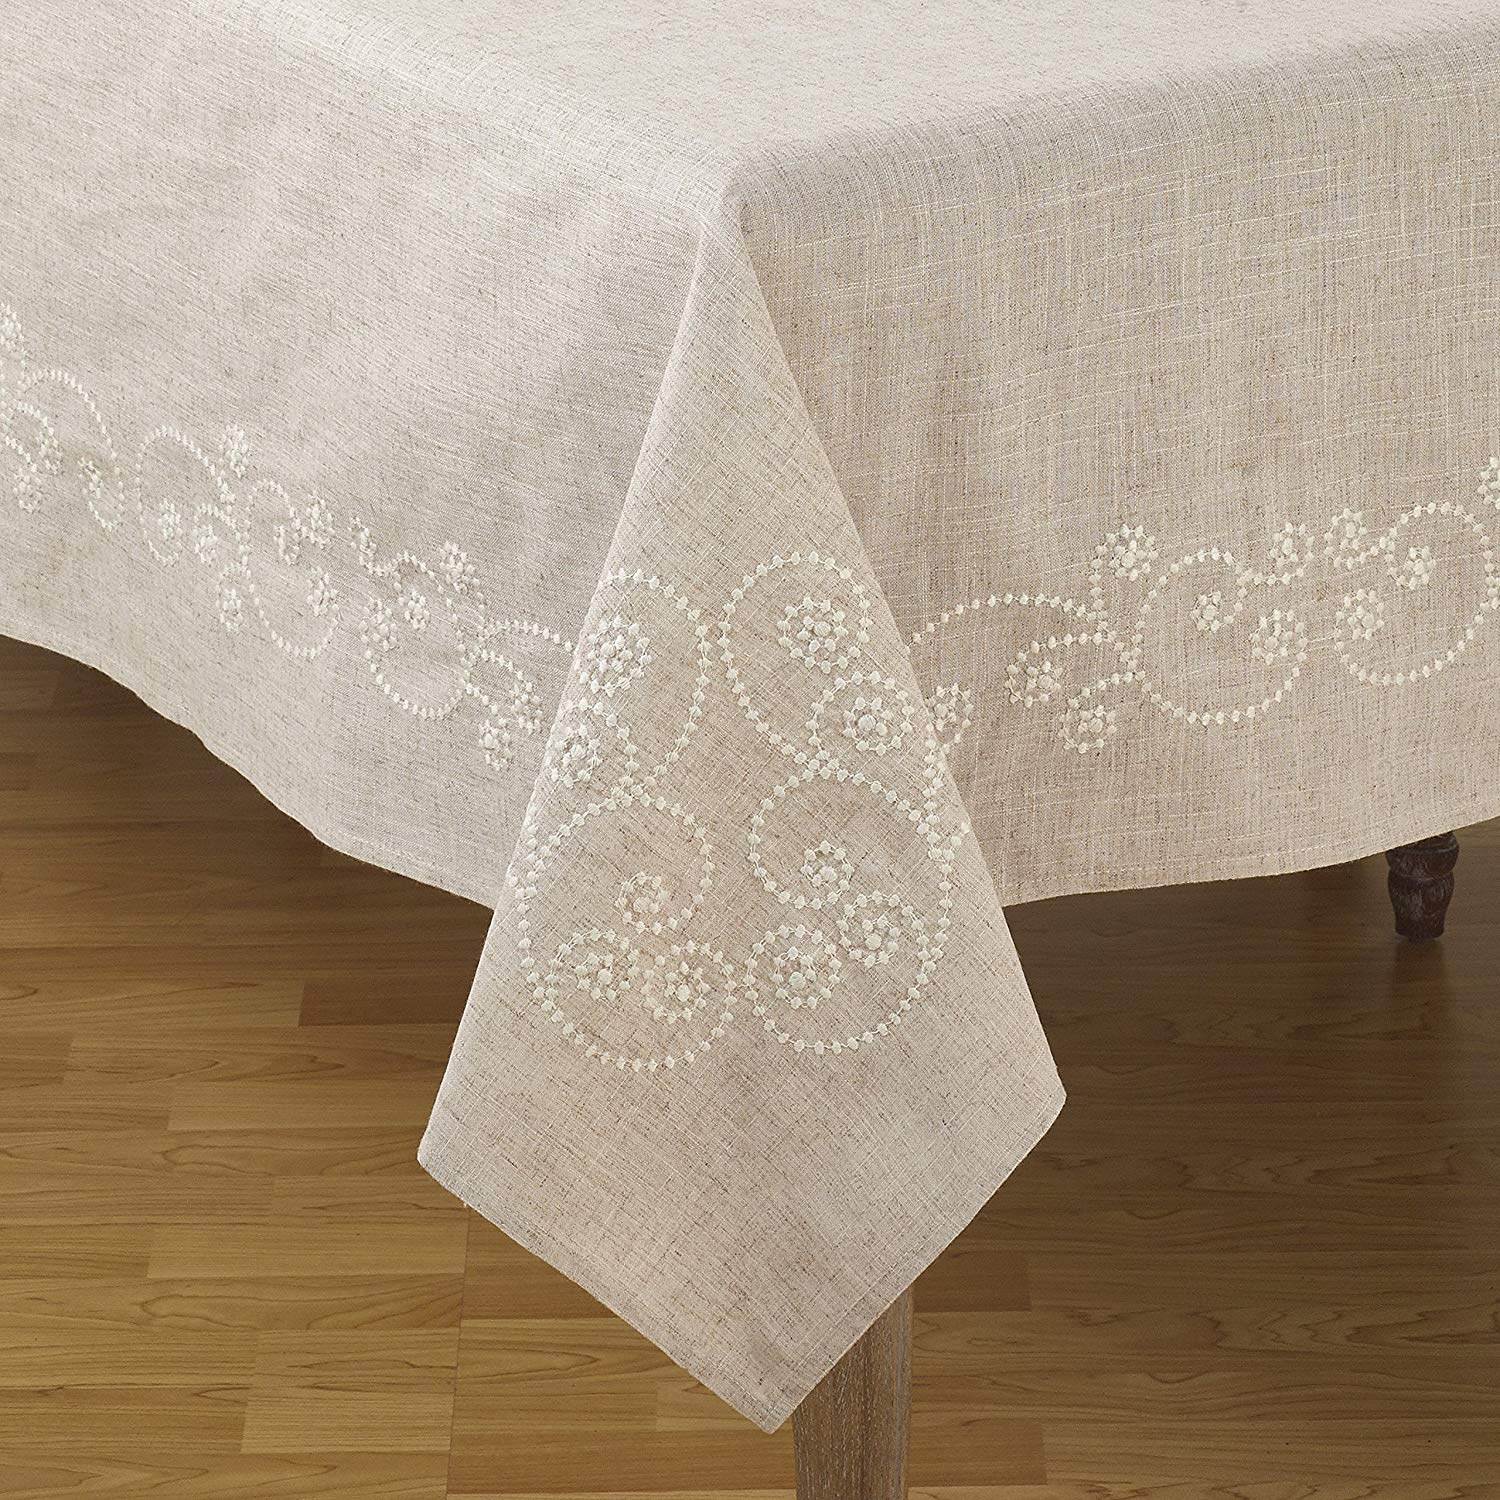 saro lifestyle embroidered swirl design linen blend accent your focus table runner pattern natural home kitchen wall college stuff plaid armchair white half moon small